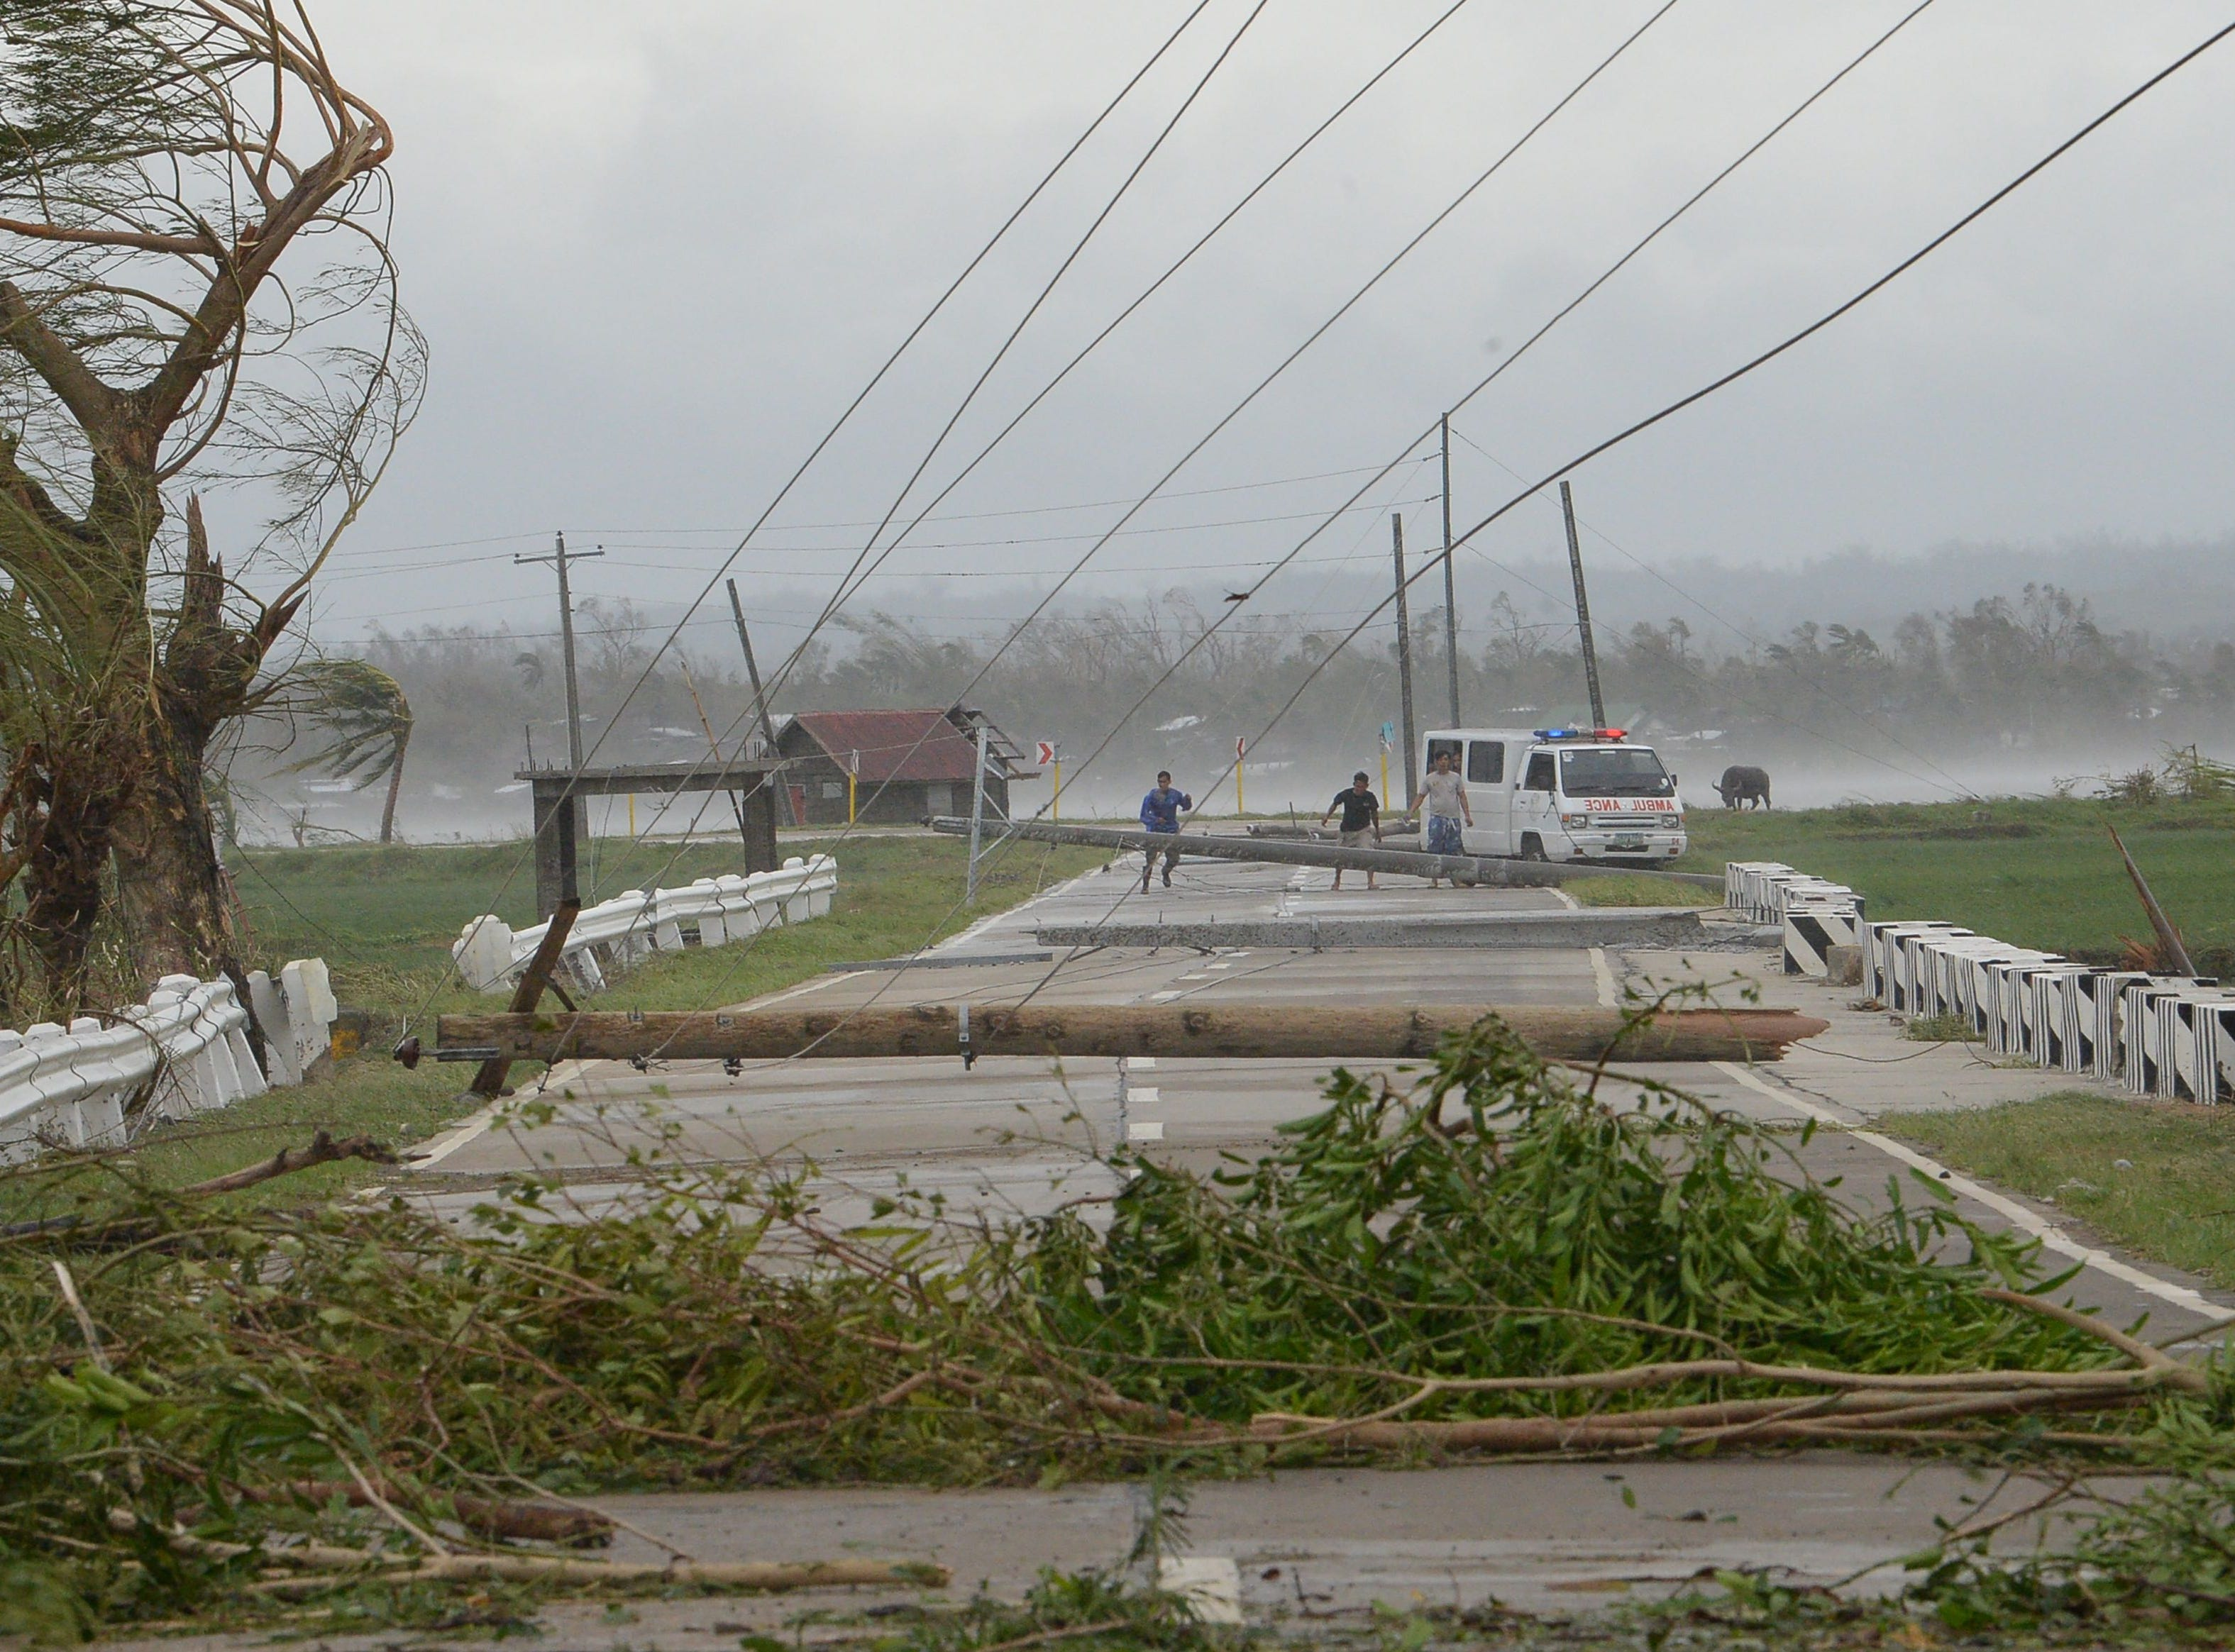 Staff of an ambulance carrying a sick child try to clear a road of debris and toppled electric posts caused by strong winds from super Typhoon Mangkhut along a road in Baggao in Cagayan province, north of Manila Sept. 15, 2018, as they try to bring the sick child to a nearby hospital of Tuguegarao city.